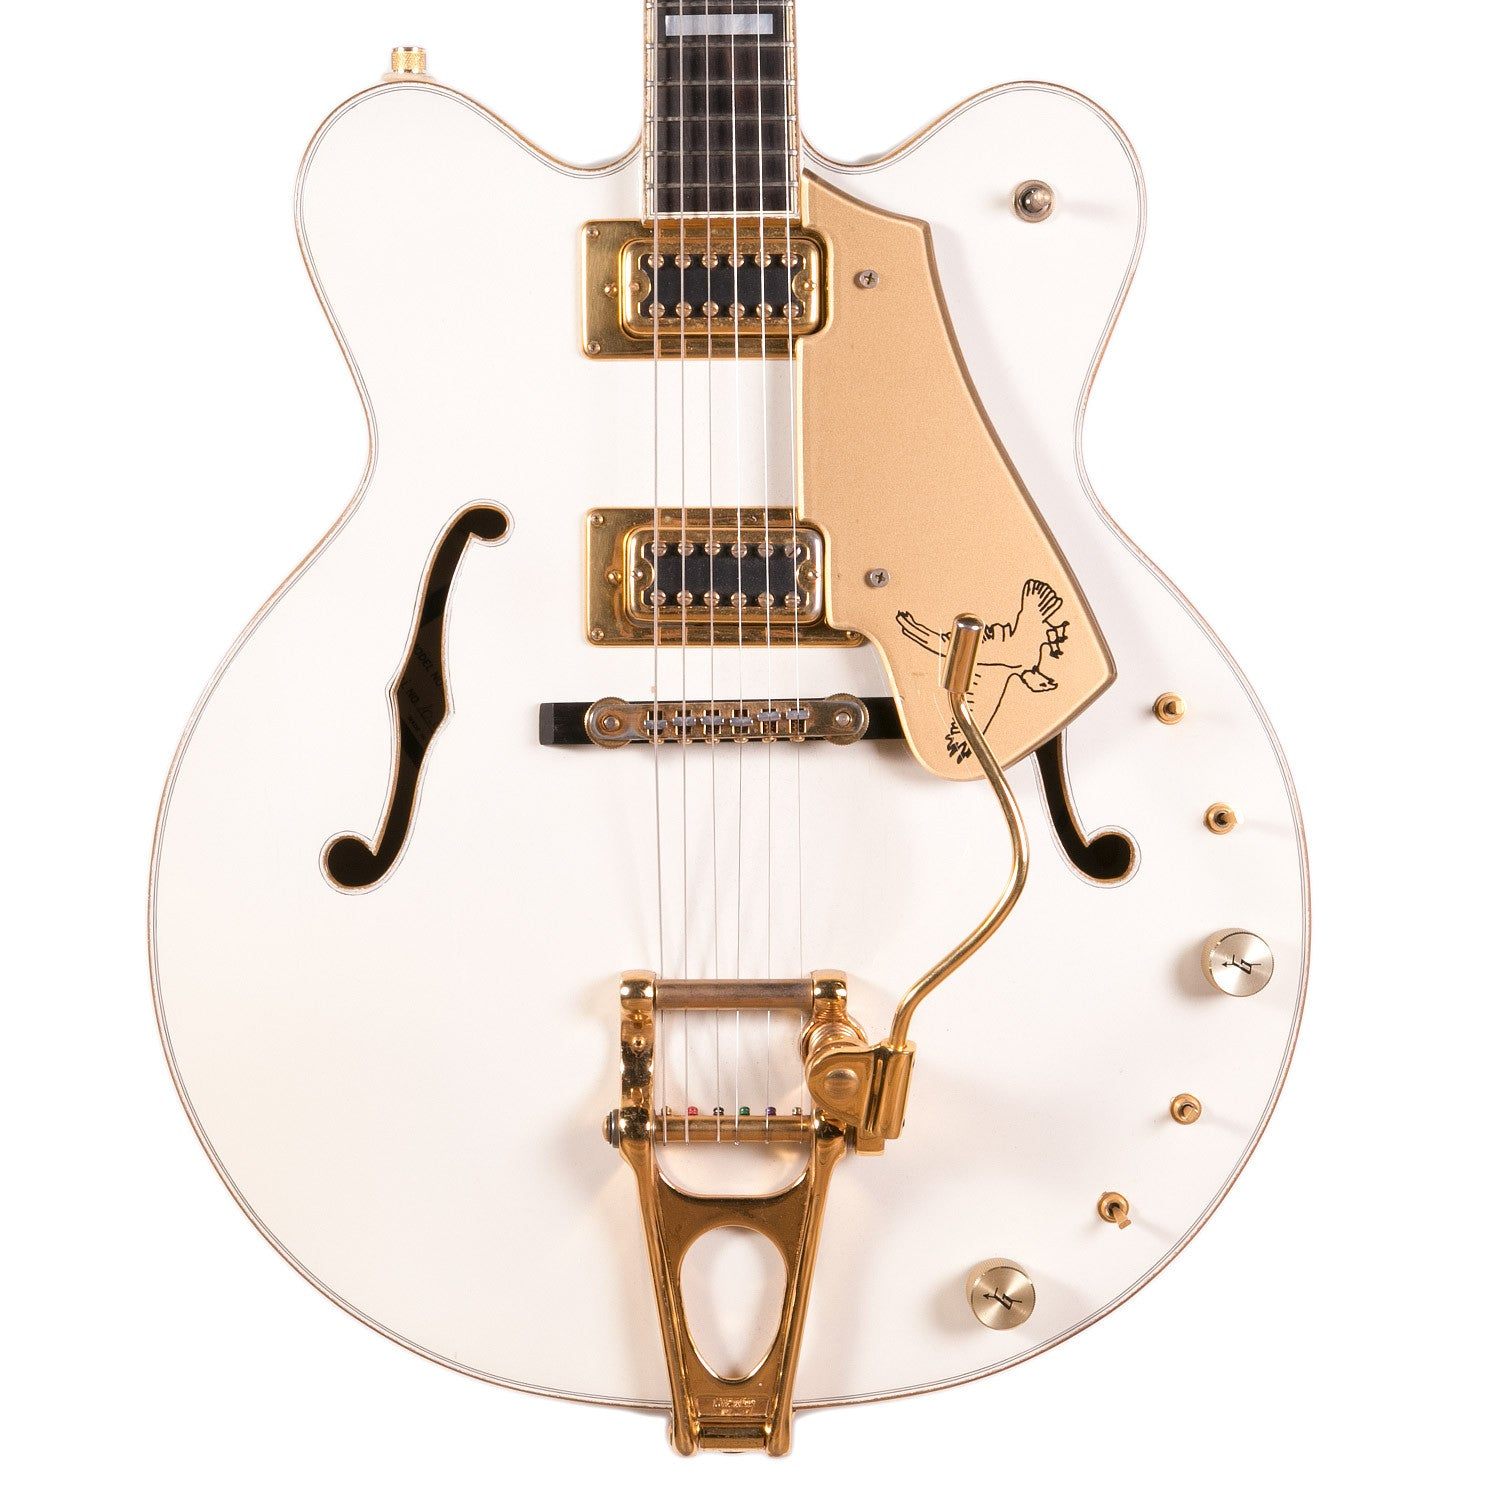 1981 Gretsch White Falcon USA Model